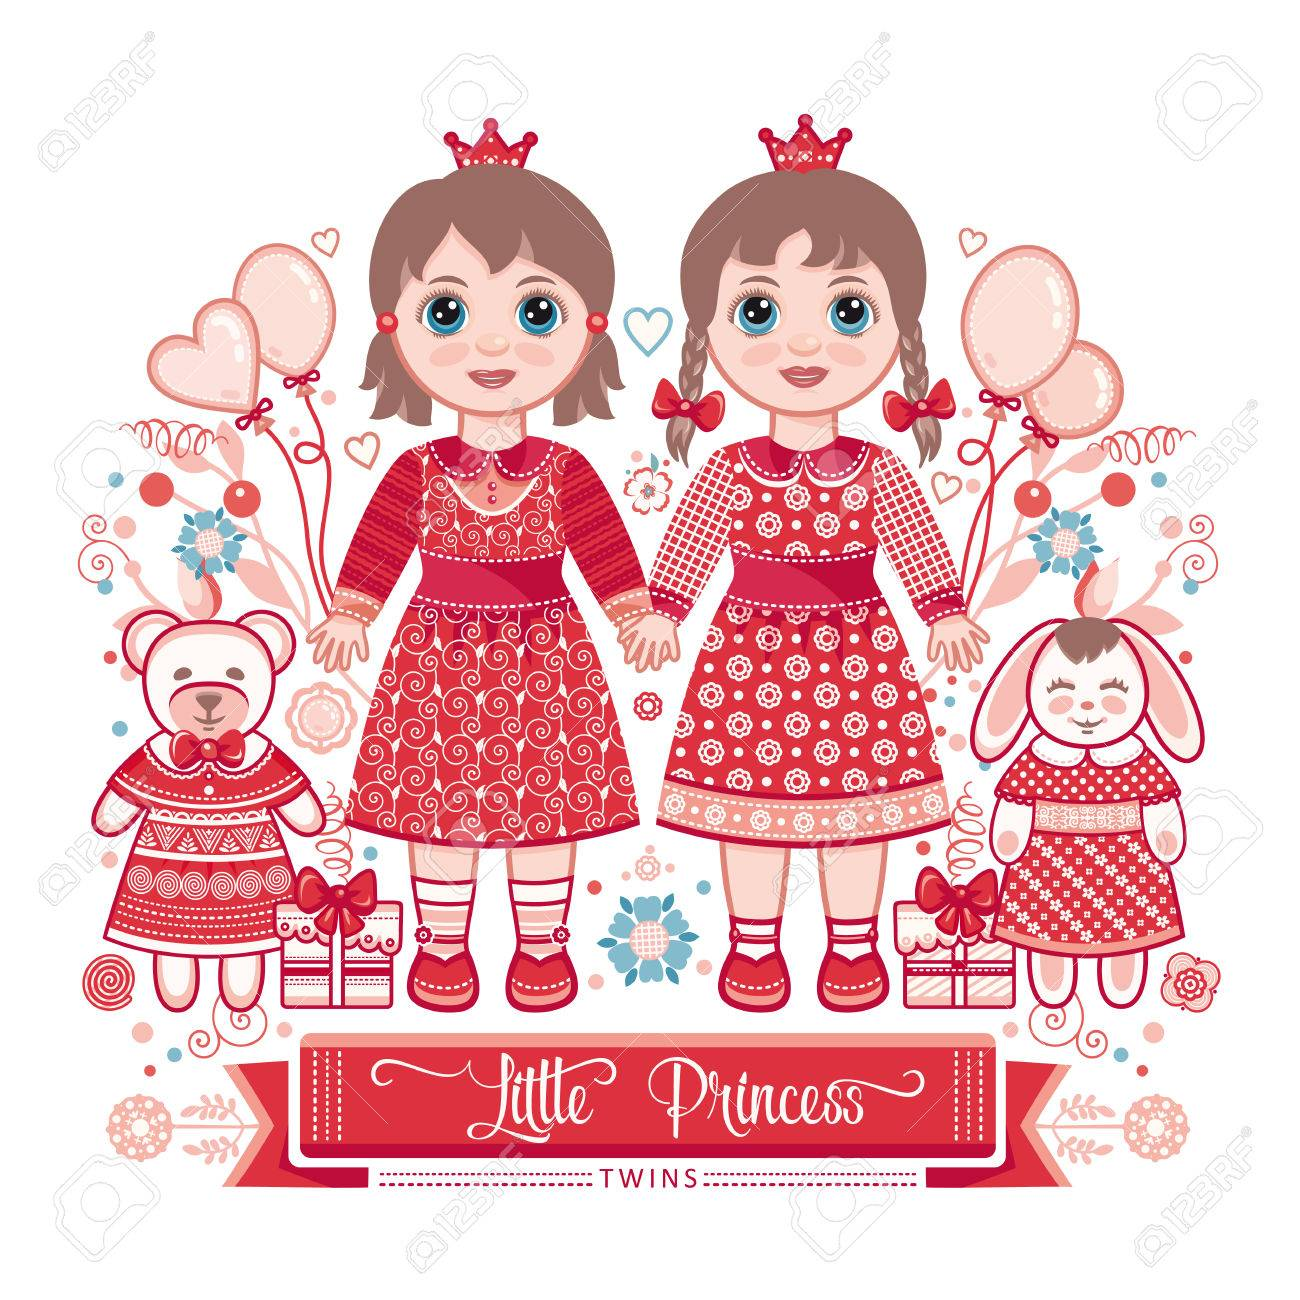 Happy birthday greetings card for girl illustration of cute happy birthday greetings card for girl illustration of cute little princess twins stock kristyandbryce Gallery